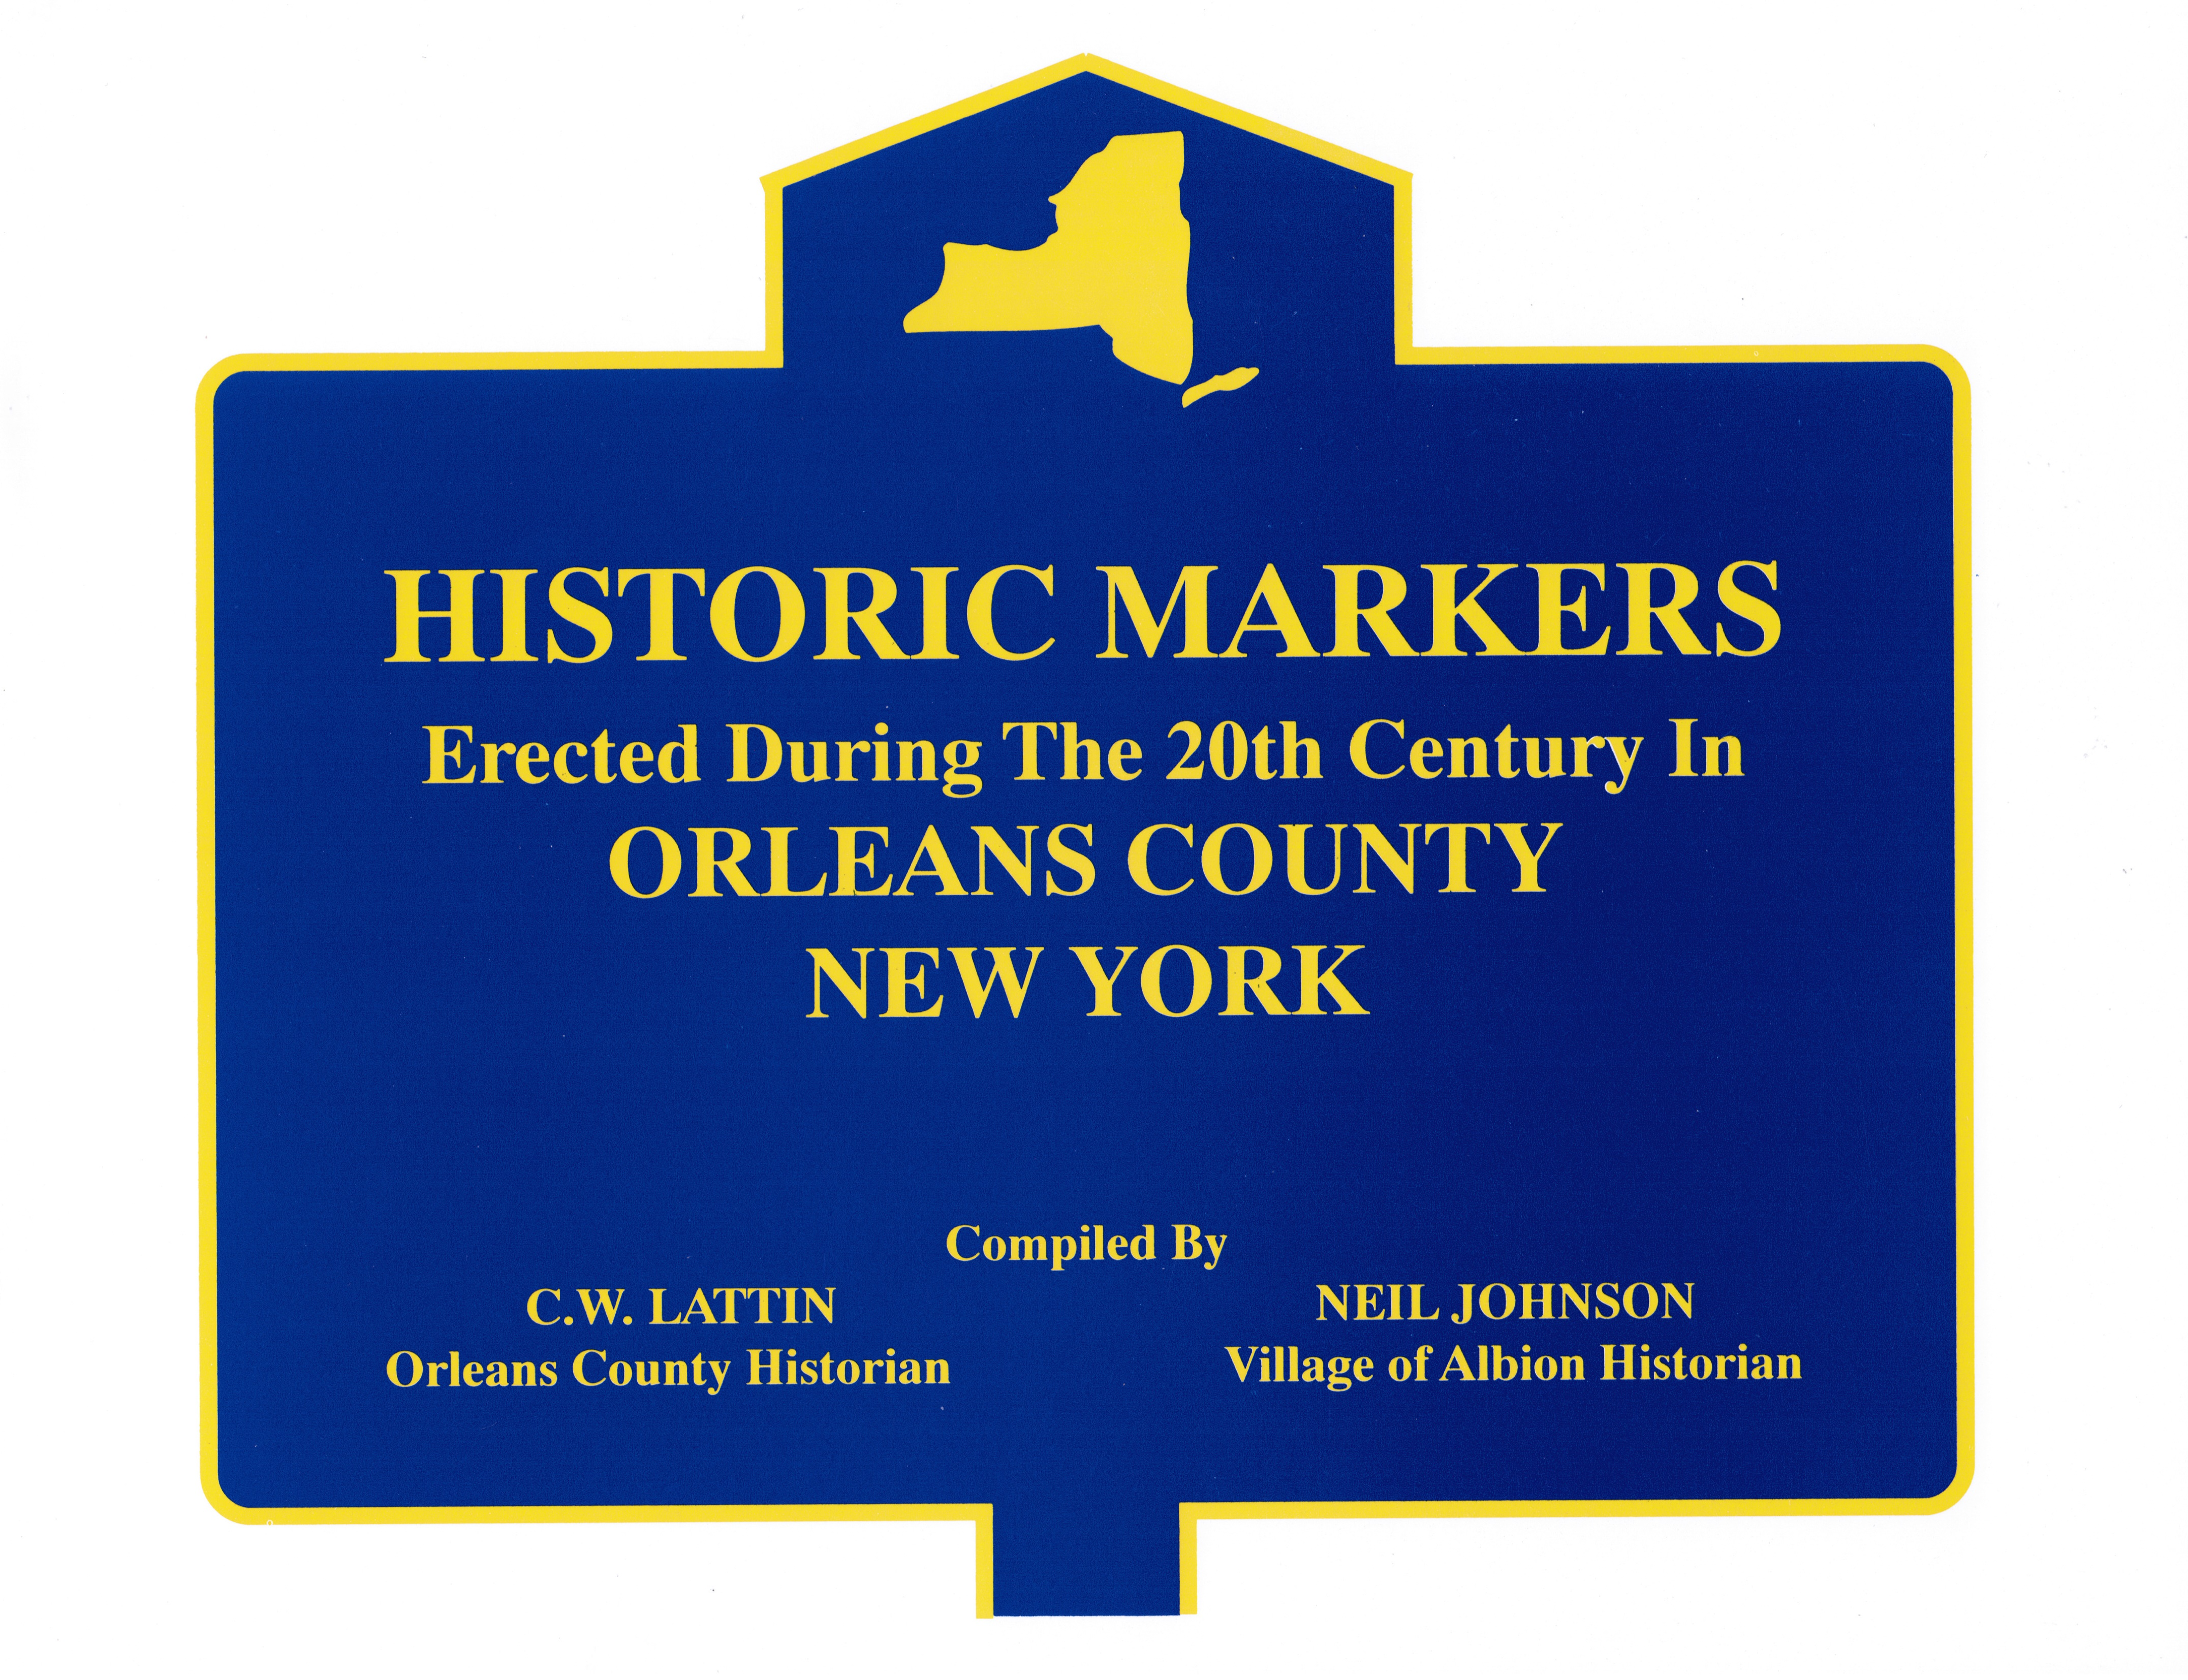 New york orleans county - Historic Markers Of Orleans County